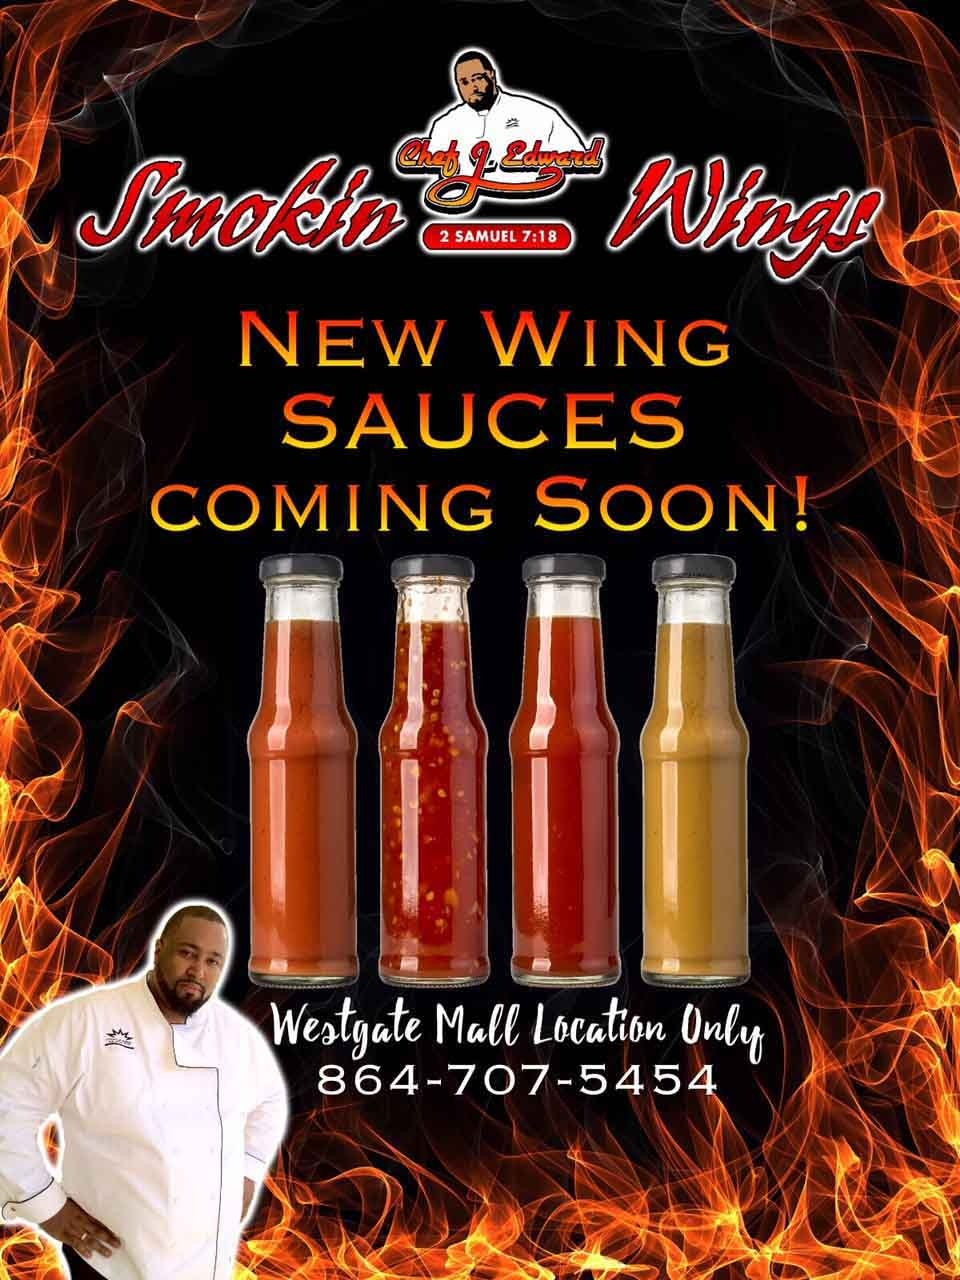 New Wing Sauces